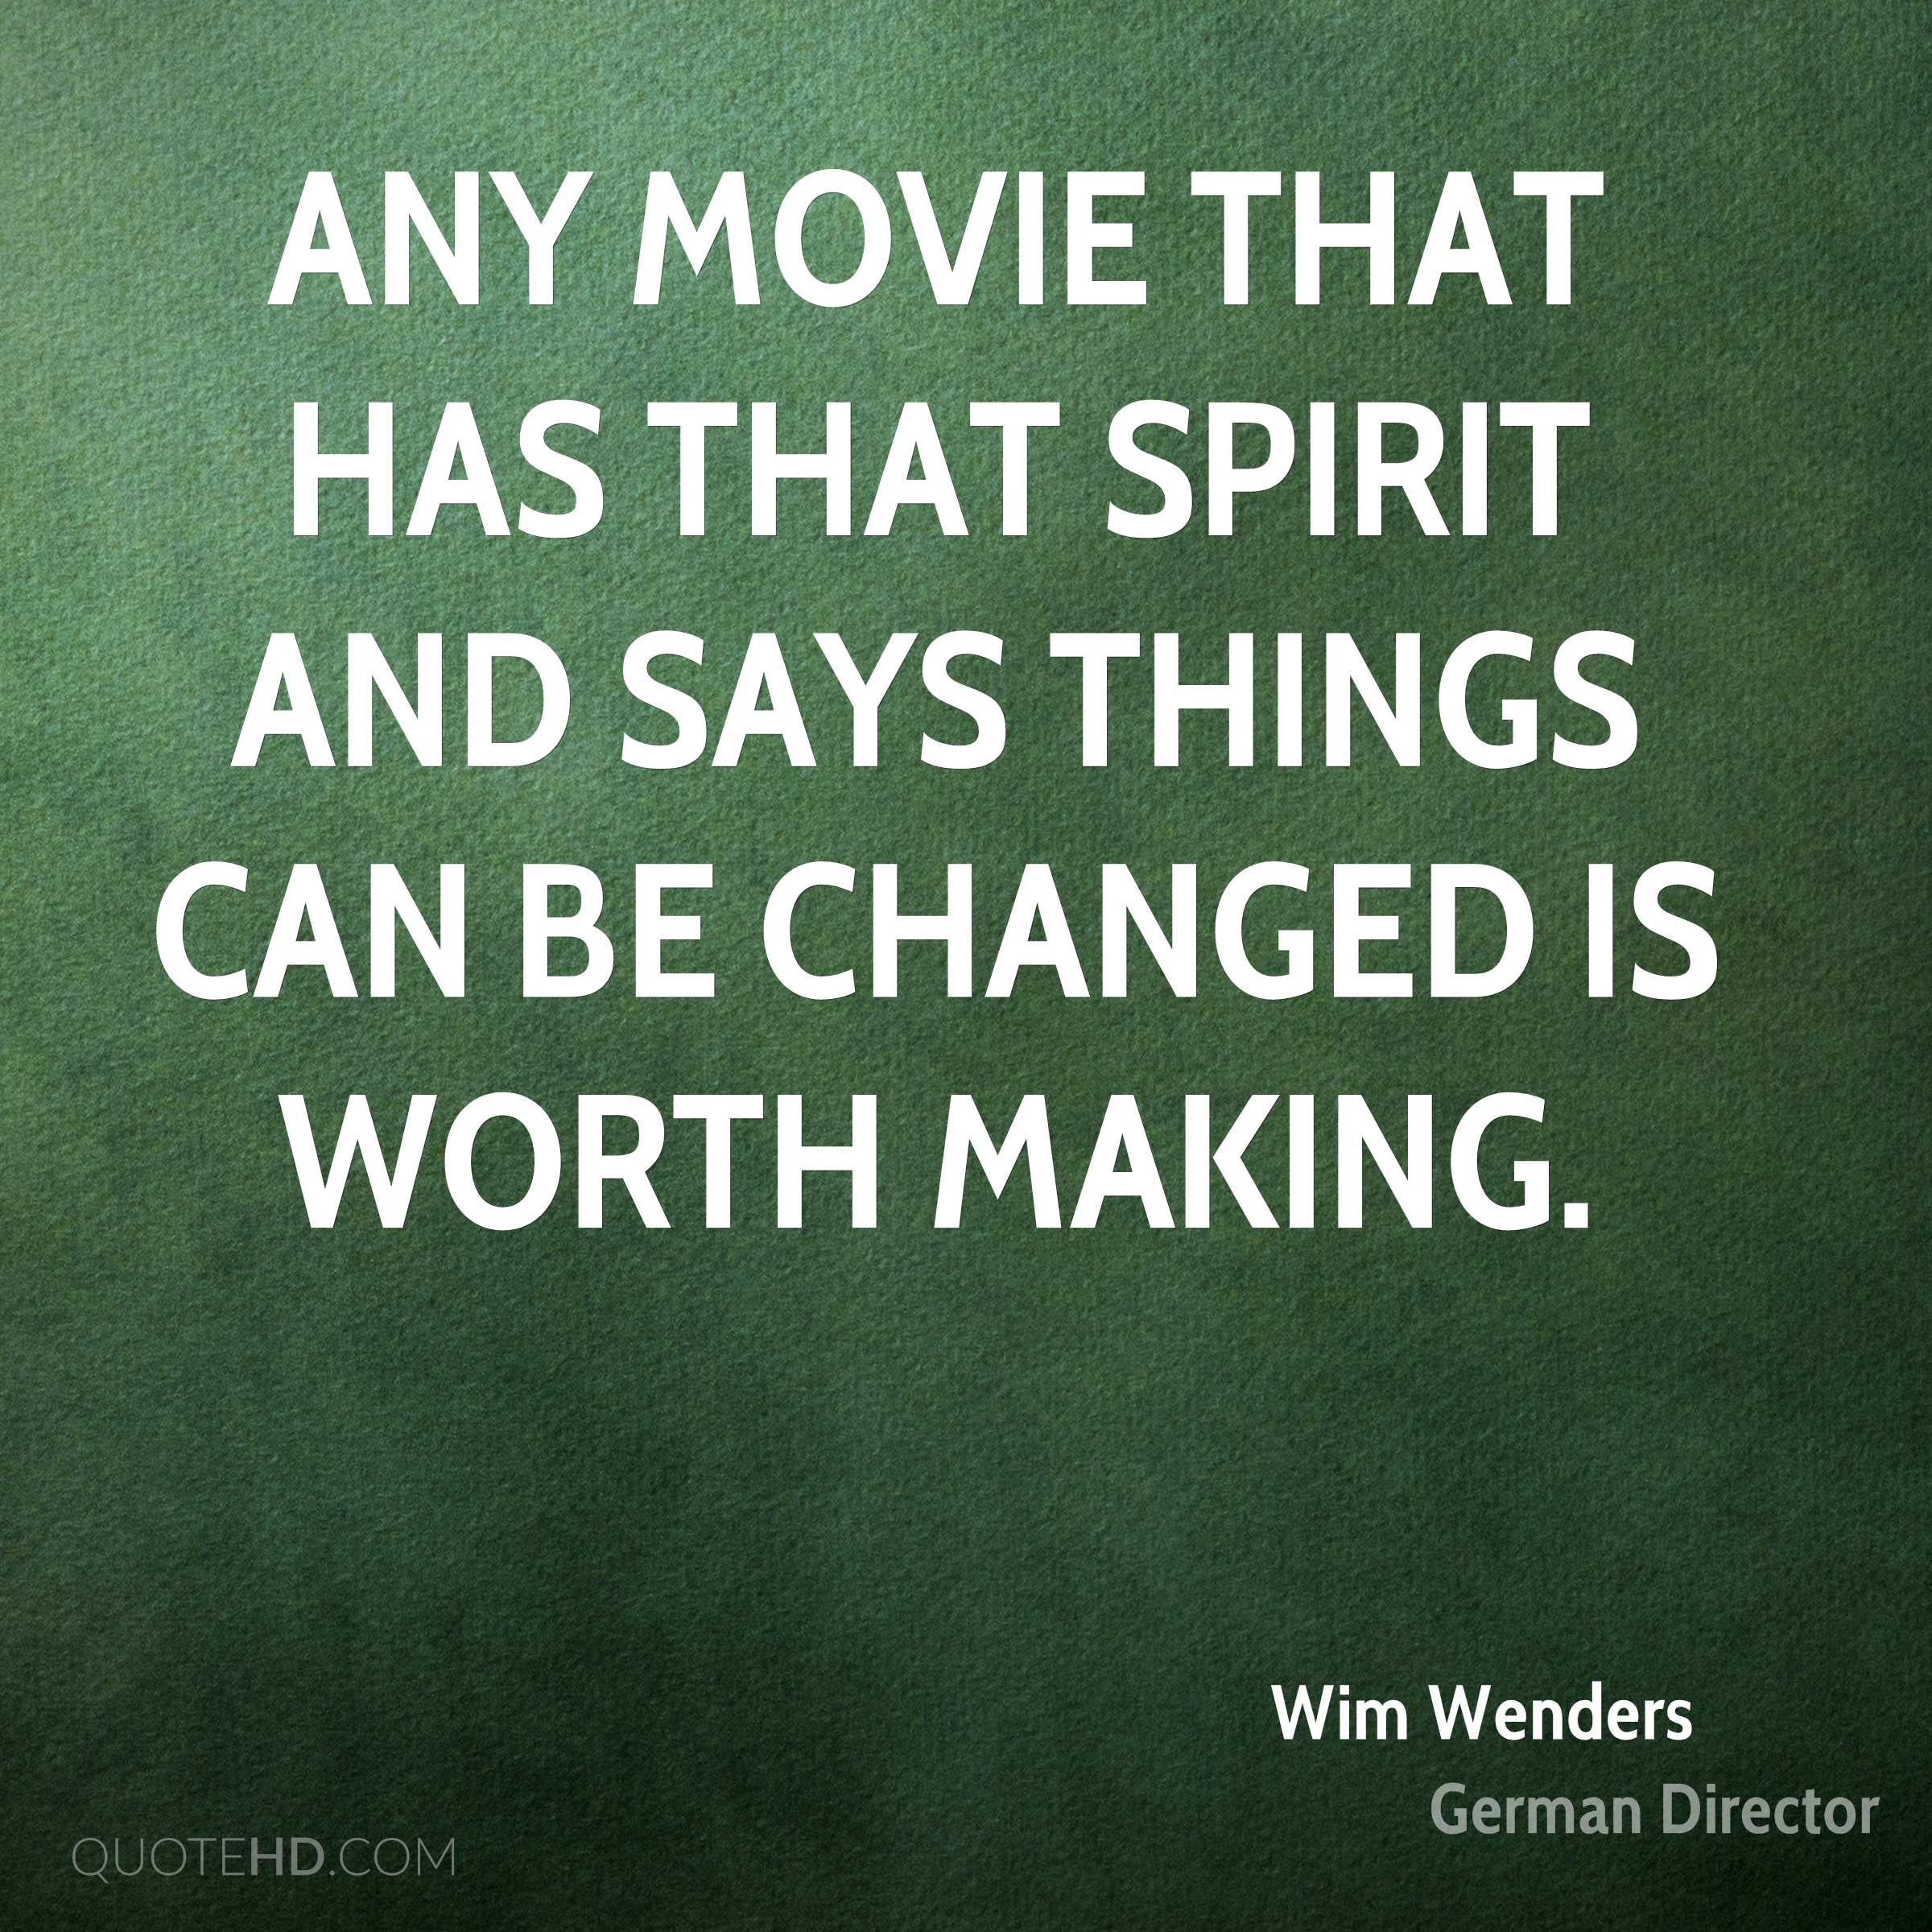 Any movie that has that spirit and says things can be changed is worth making.